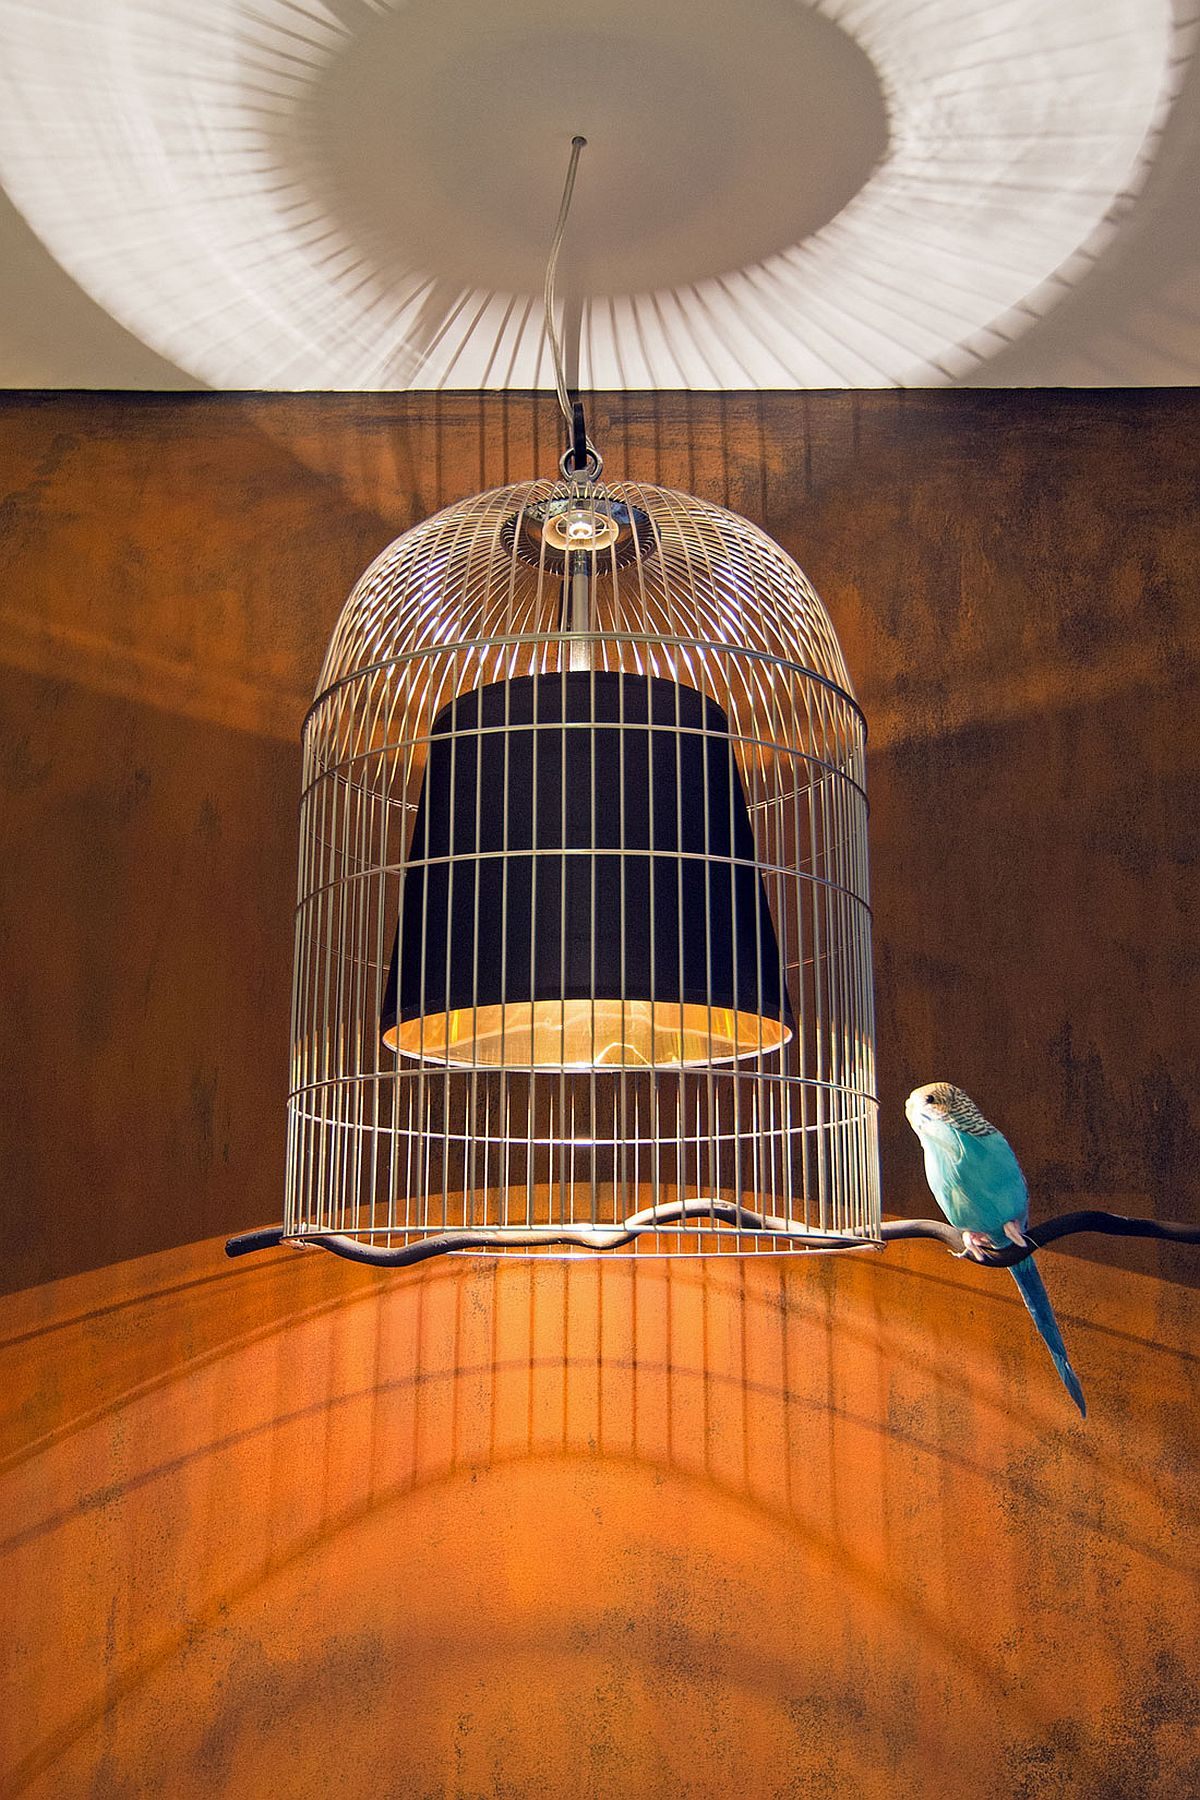 Ingenious and playful pendant light design with a birdcage around it